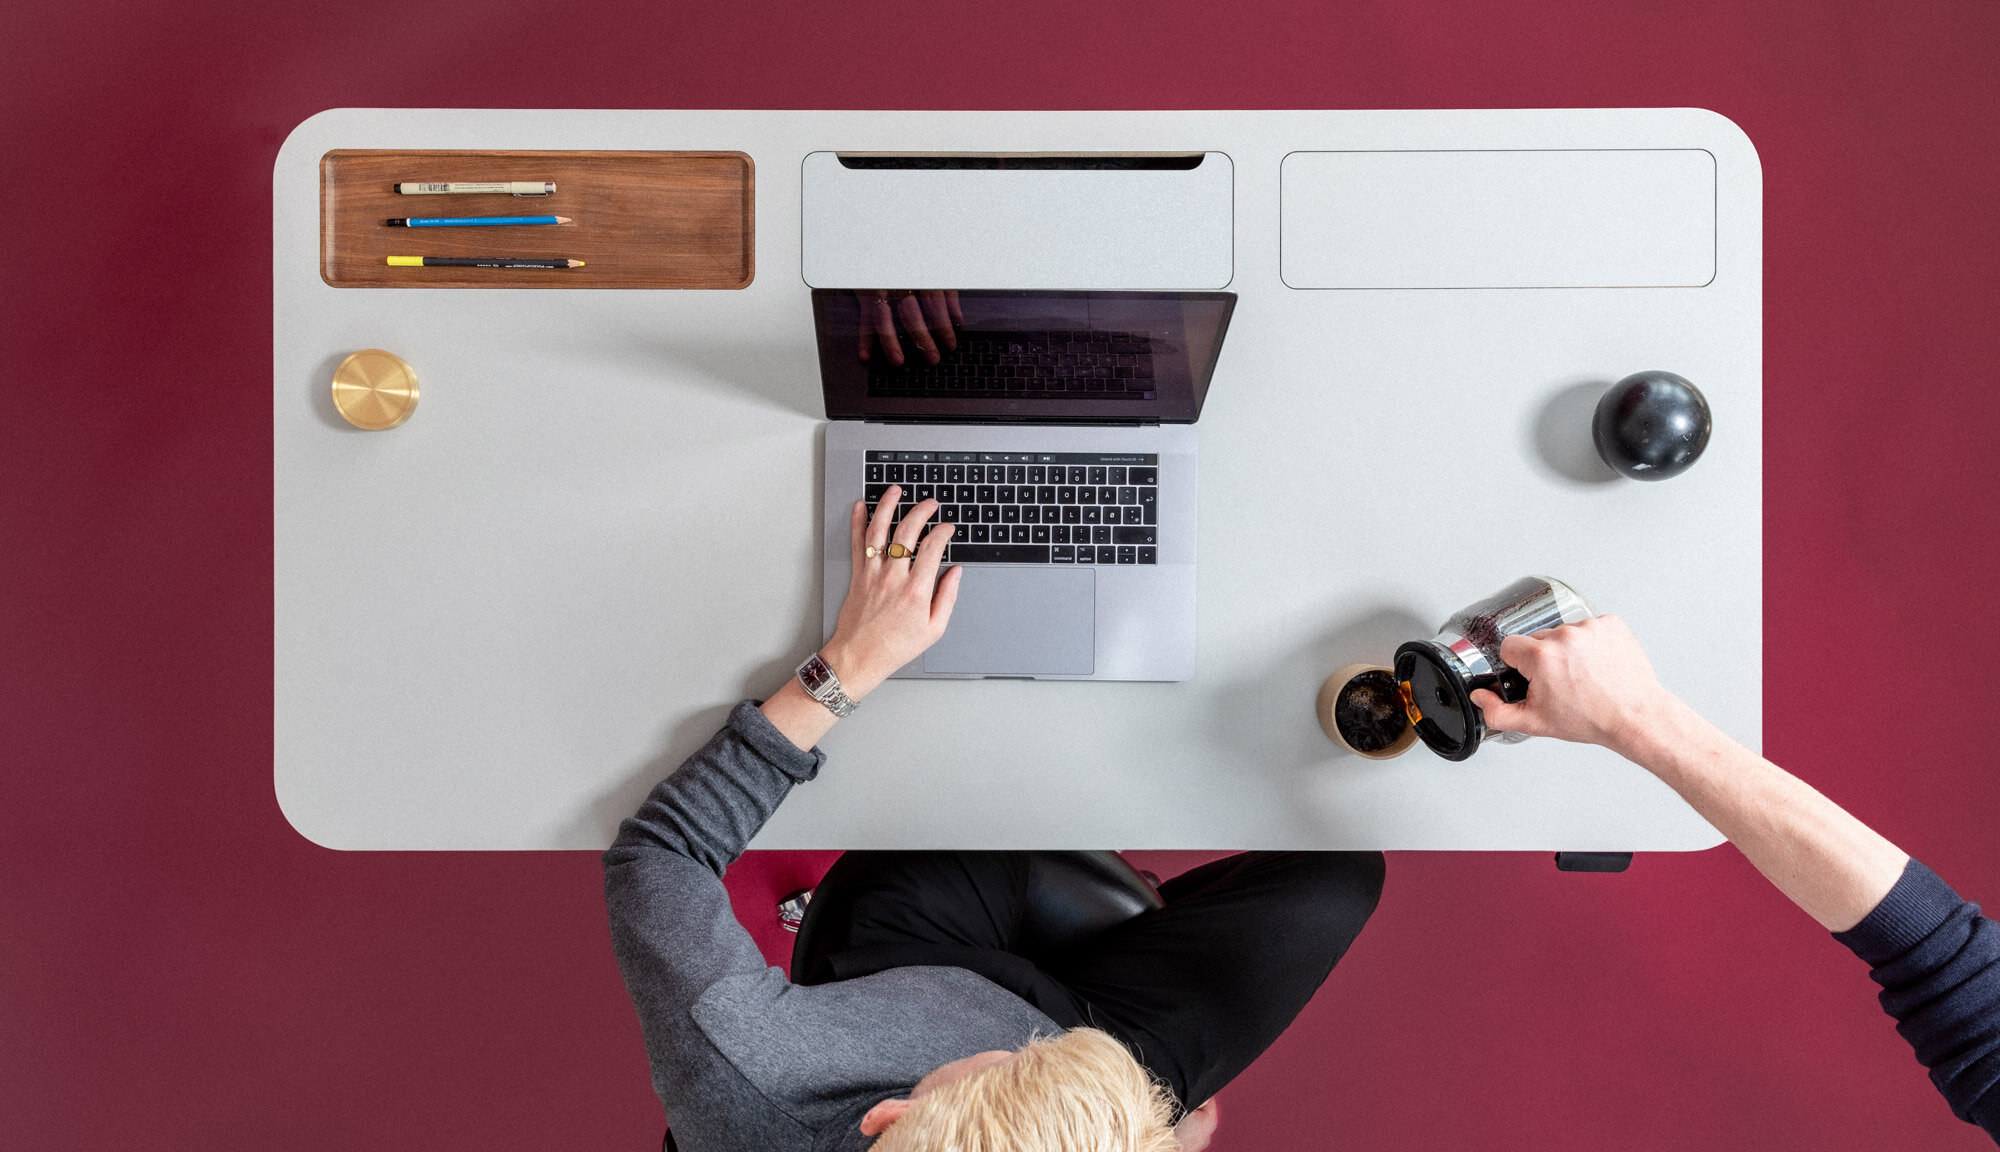 Danish Startup Stykka Has Designed The World's First Entirely Recyclable, Sustainable and Open-Source Desk